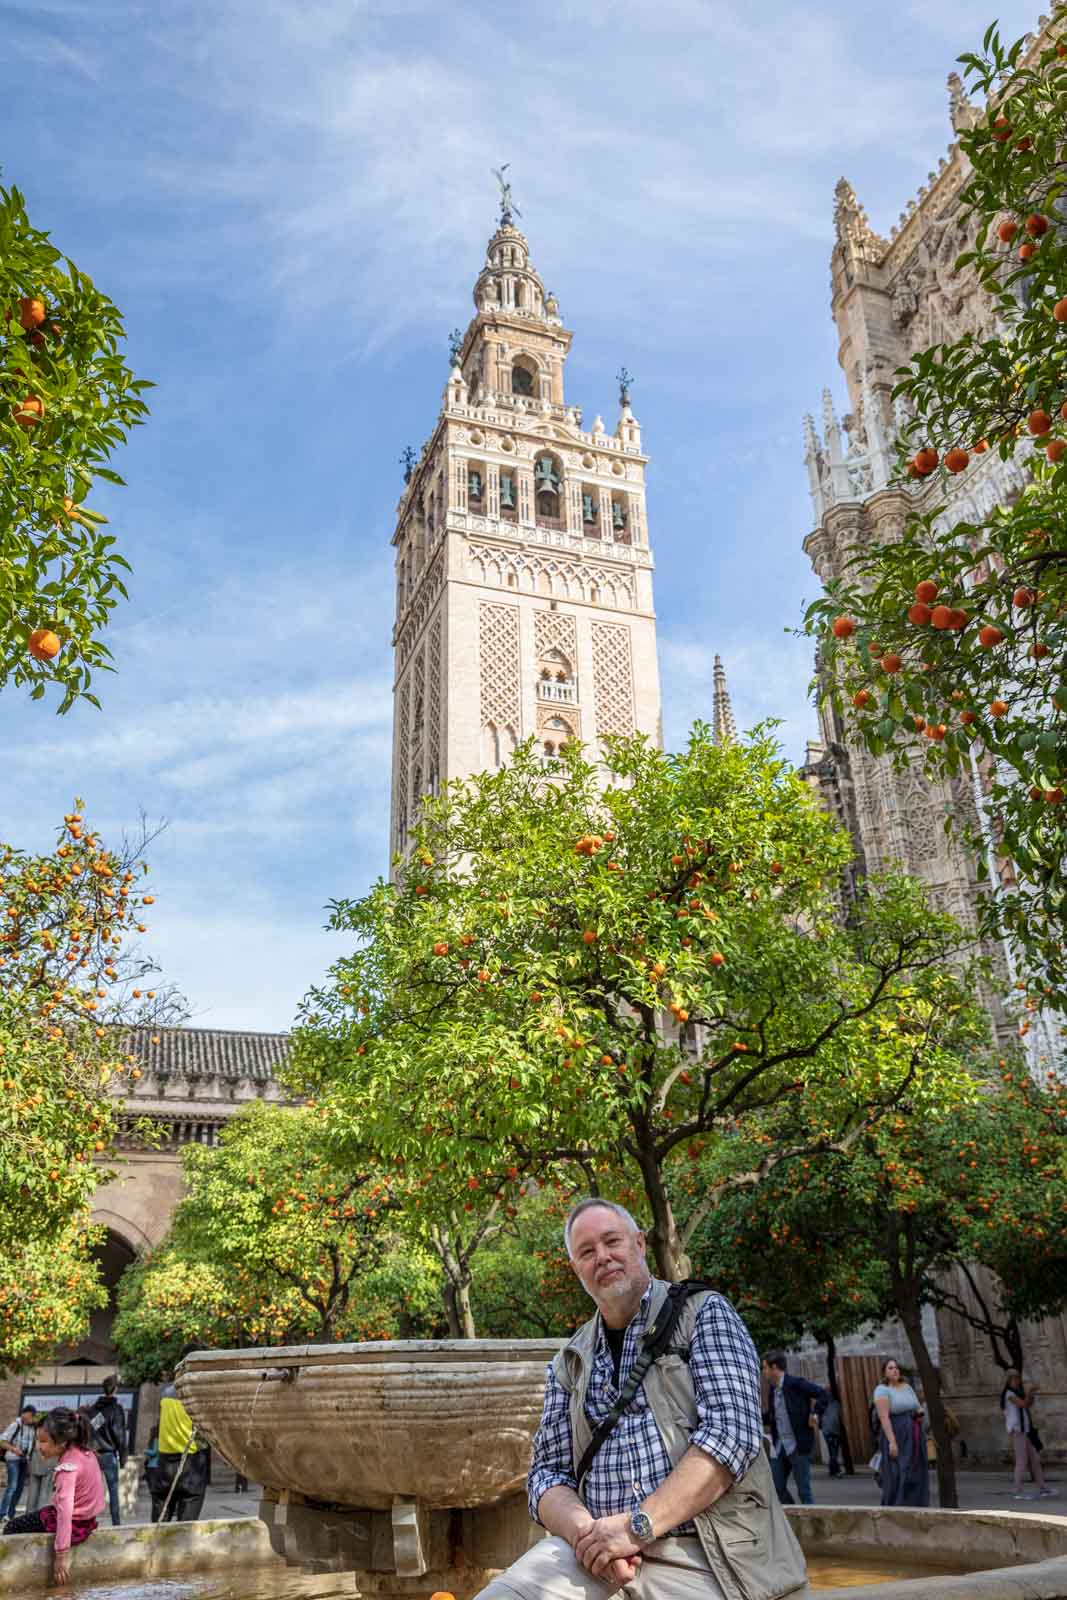 Andalusia, Andalusien, Cathedral, Church, Giralda, Kathedrale, Kirche, Sevilla, Seville, Spain, Spanien, Tower, Turm